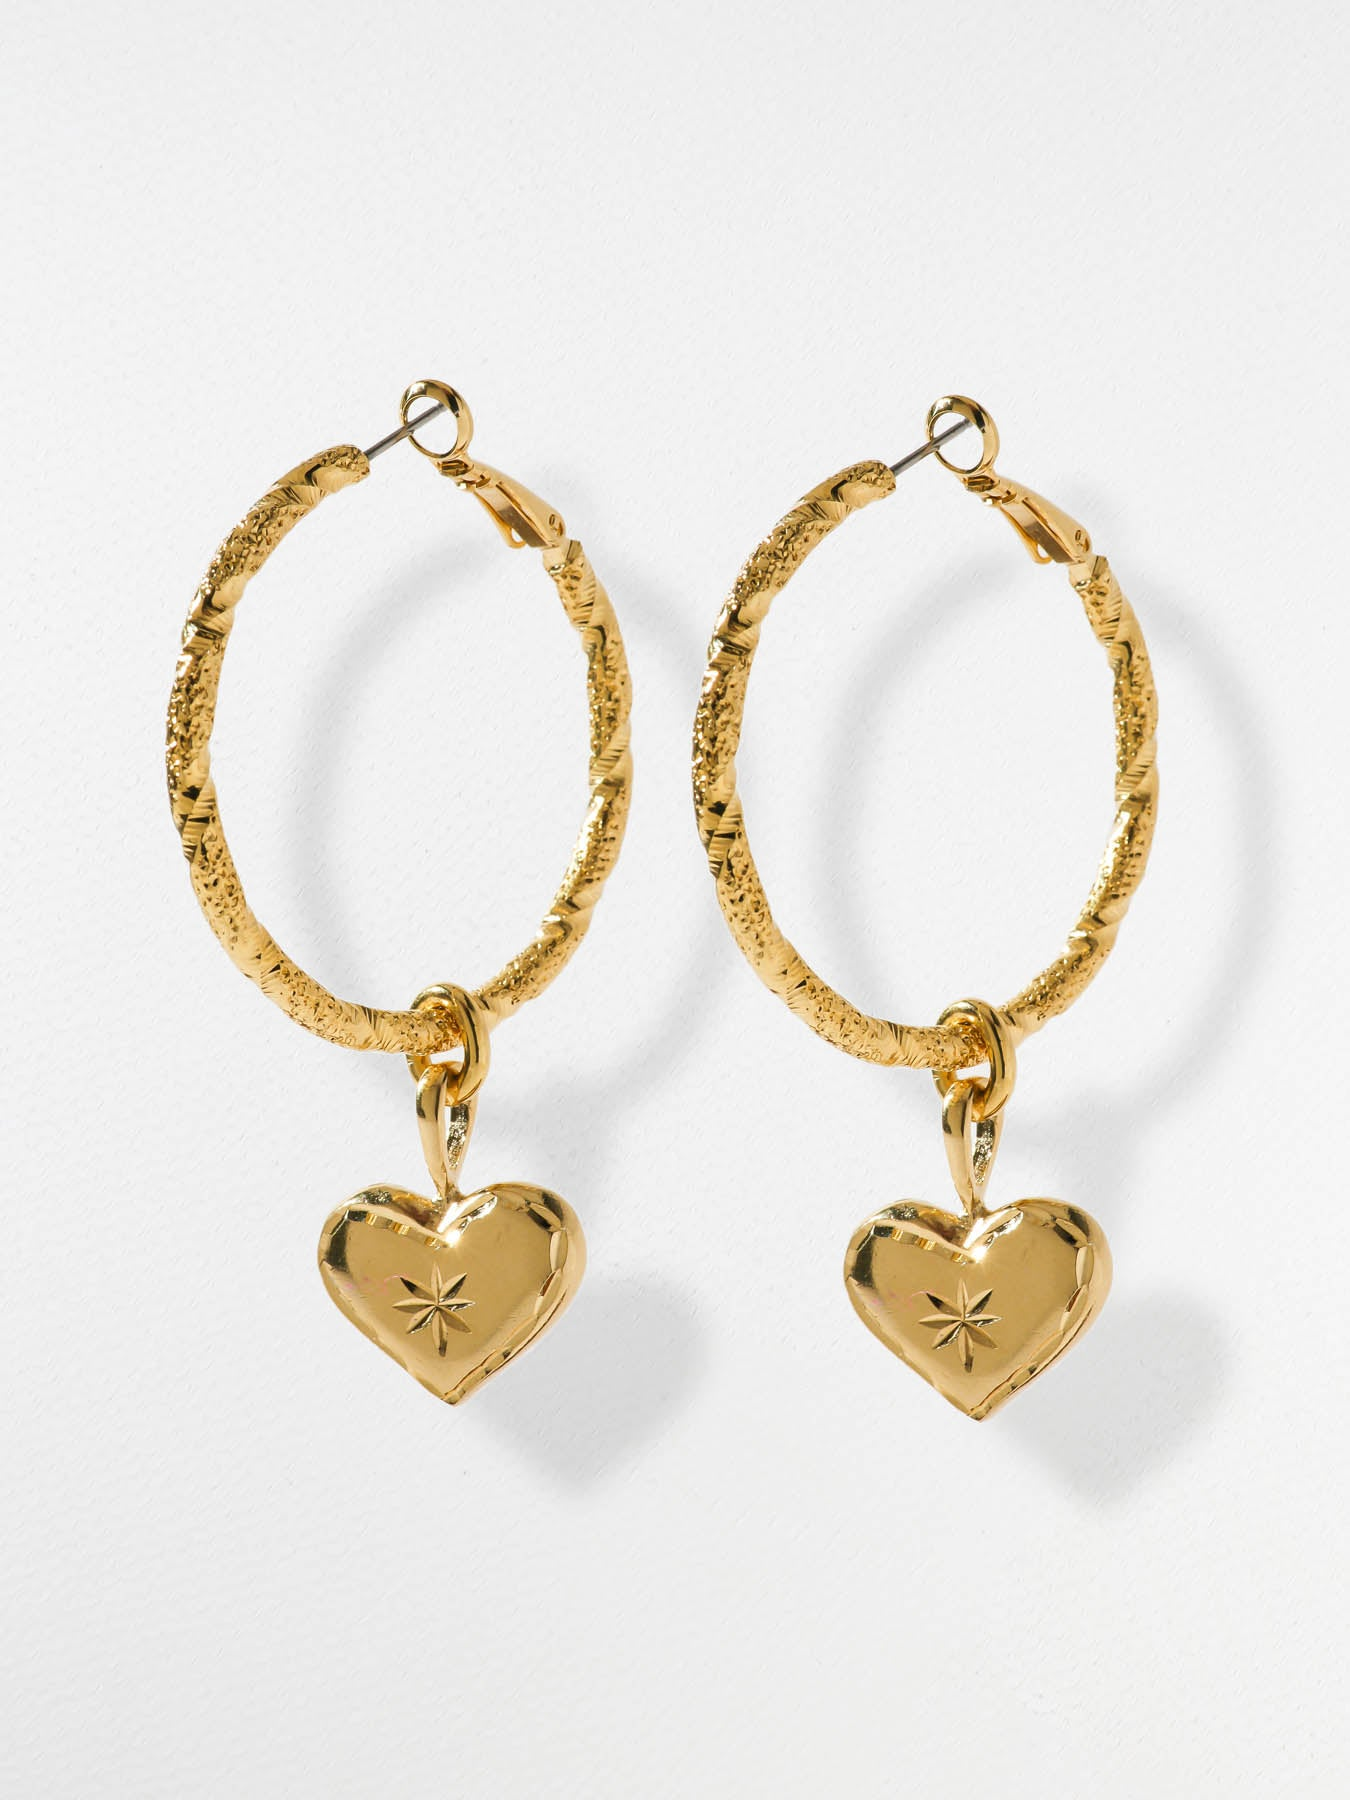 Earrings The Etched Heart Hoop Earrings Vanessa Mooney